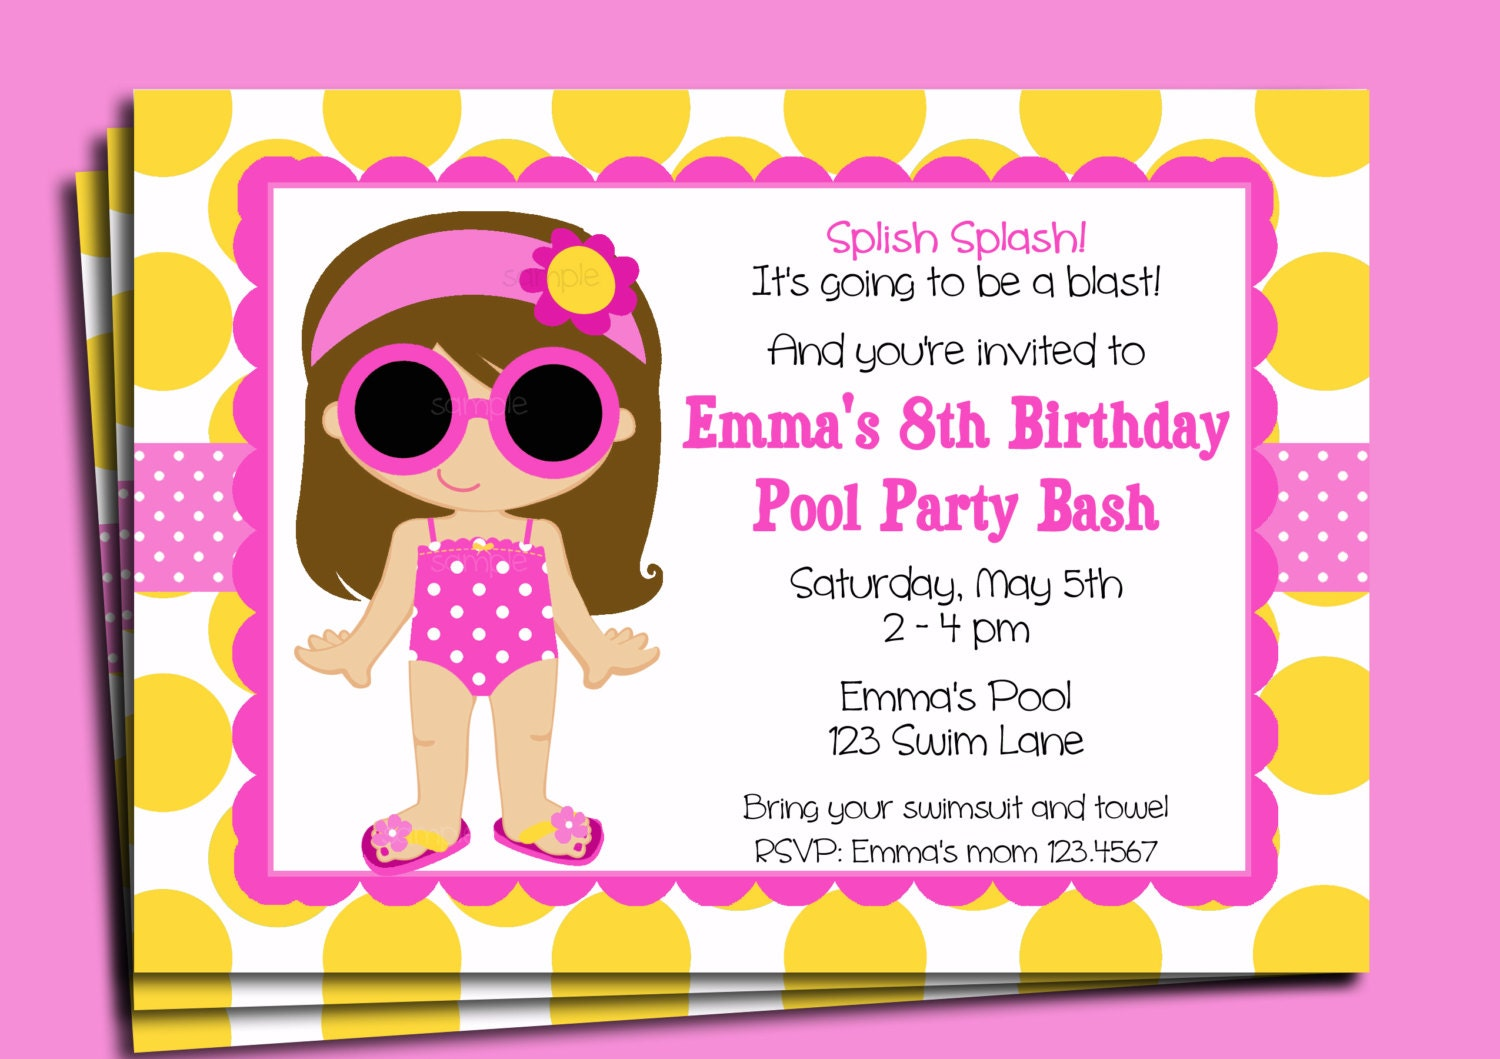 Kids Pool Party Invitation Wording Pasoevolistco - Party invitation template: pool party invitations templates